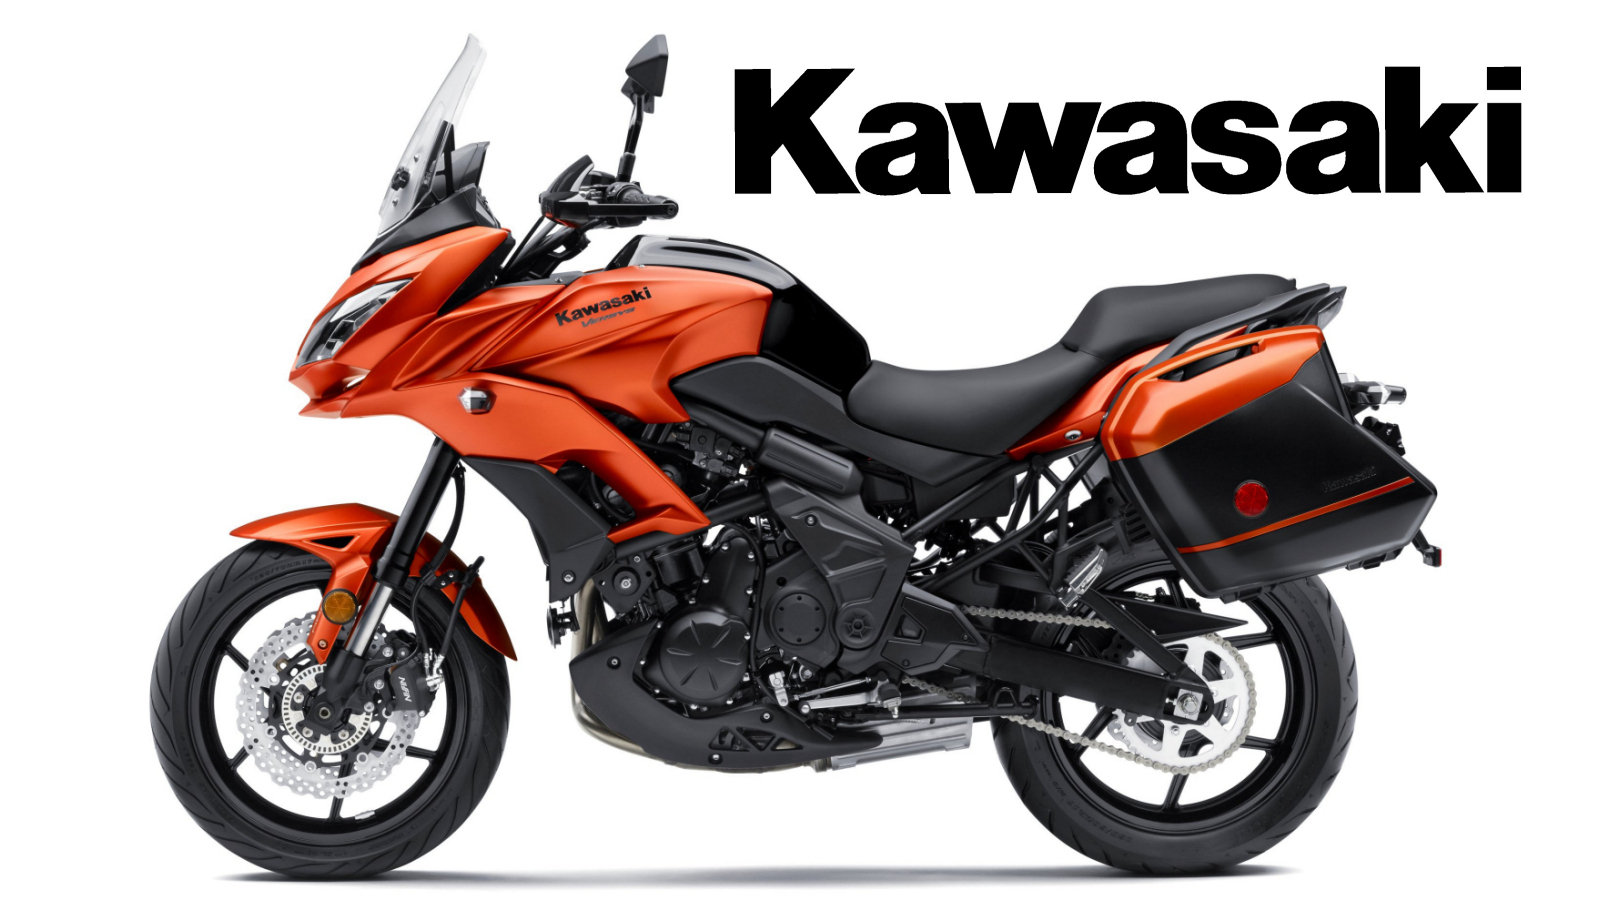 2015 2017 kawasaki versys 650 versys 650 lt versys 1000 lt picture 684871 motorcycle. Black Bedroom Furniture Sets. Home Design Ideas